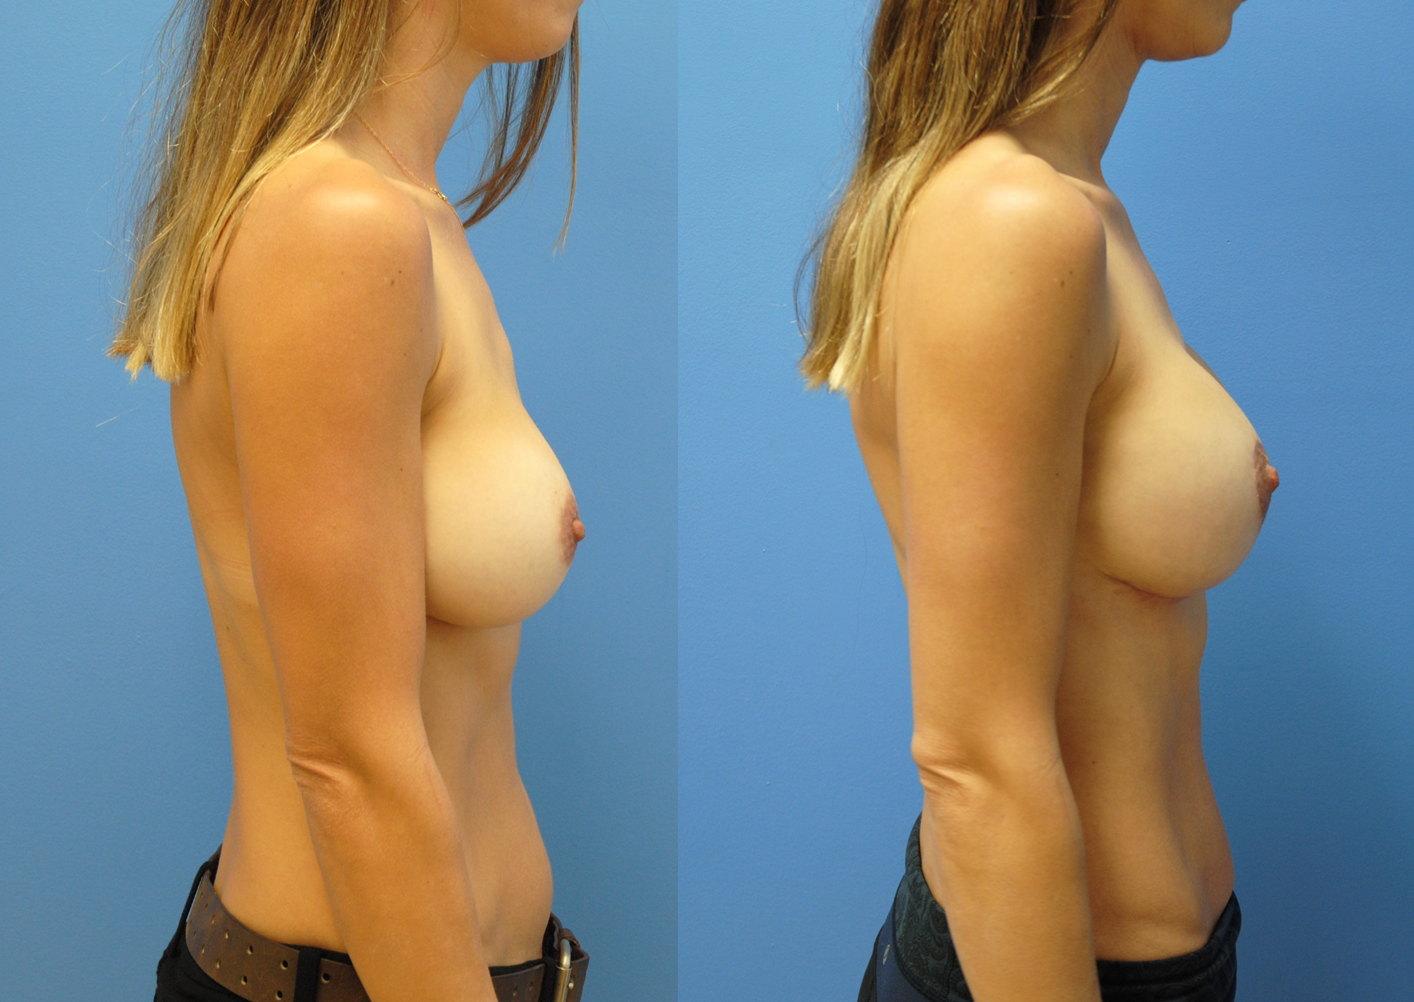 Mastopexy-Augmentation-Profile-Newport-Beach-Brian-Dickinson-M.D.